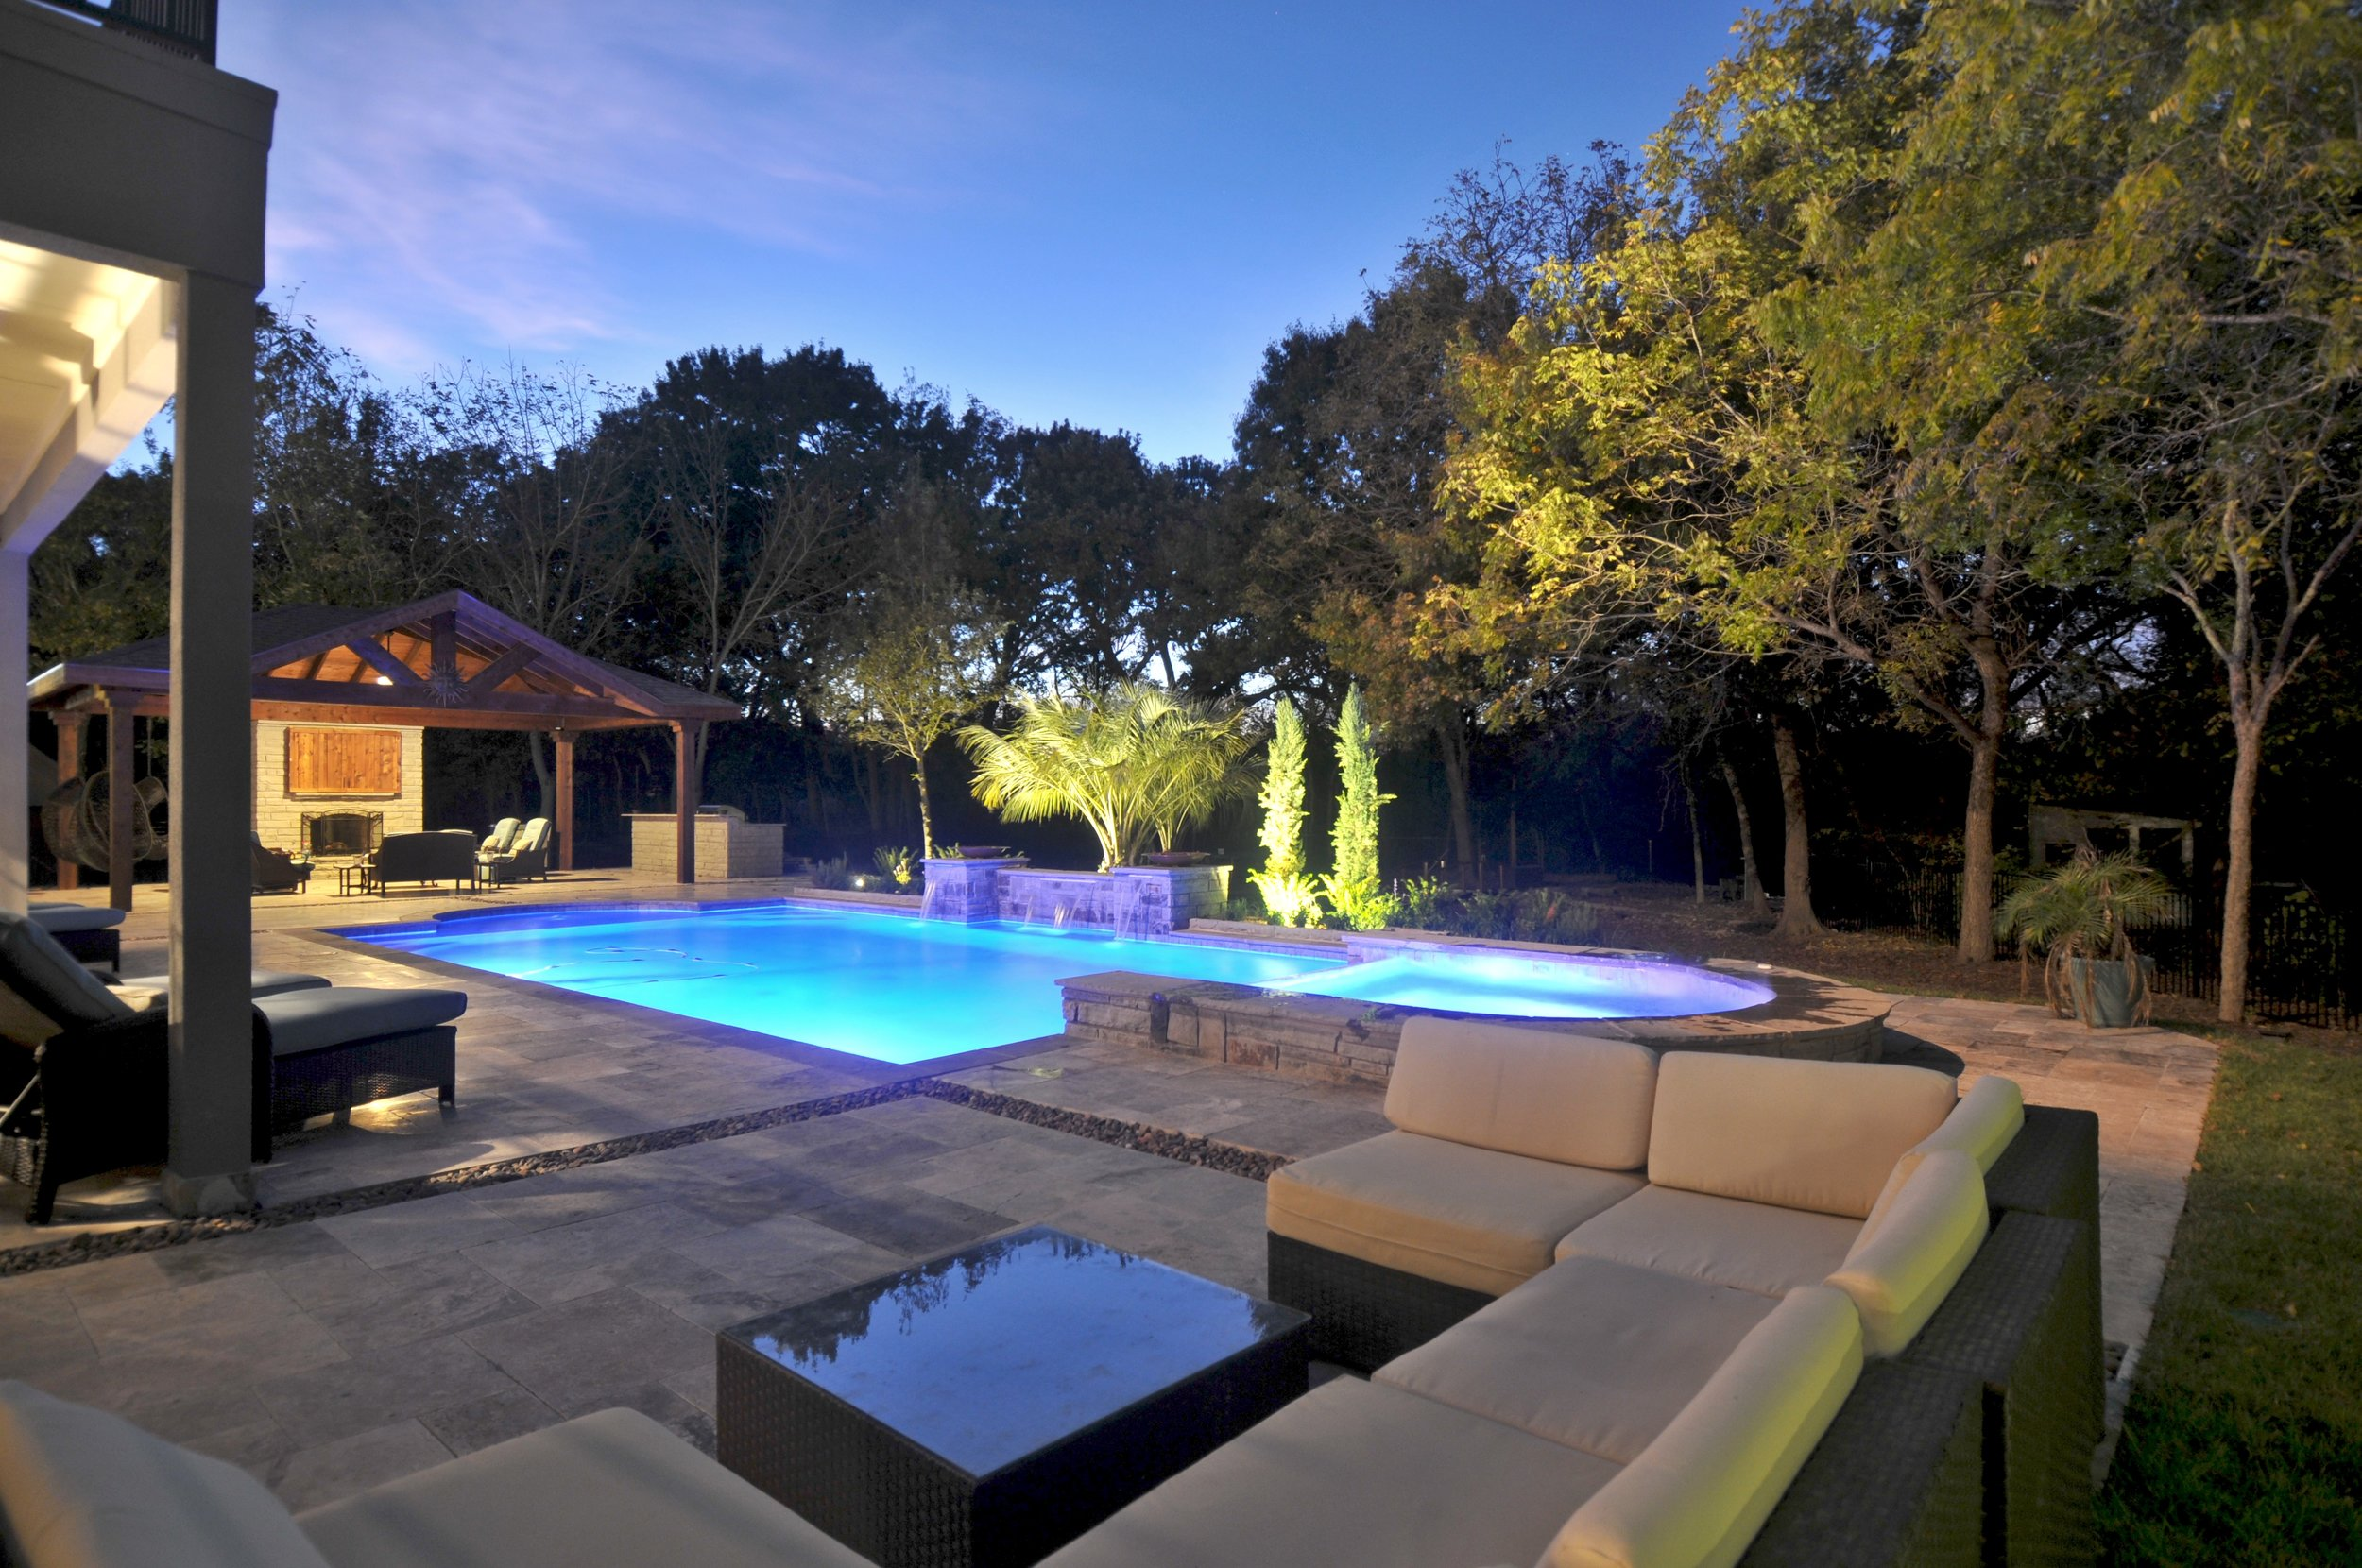 DSC_2275+Adjusted